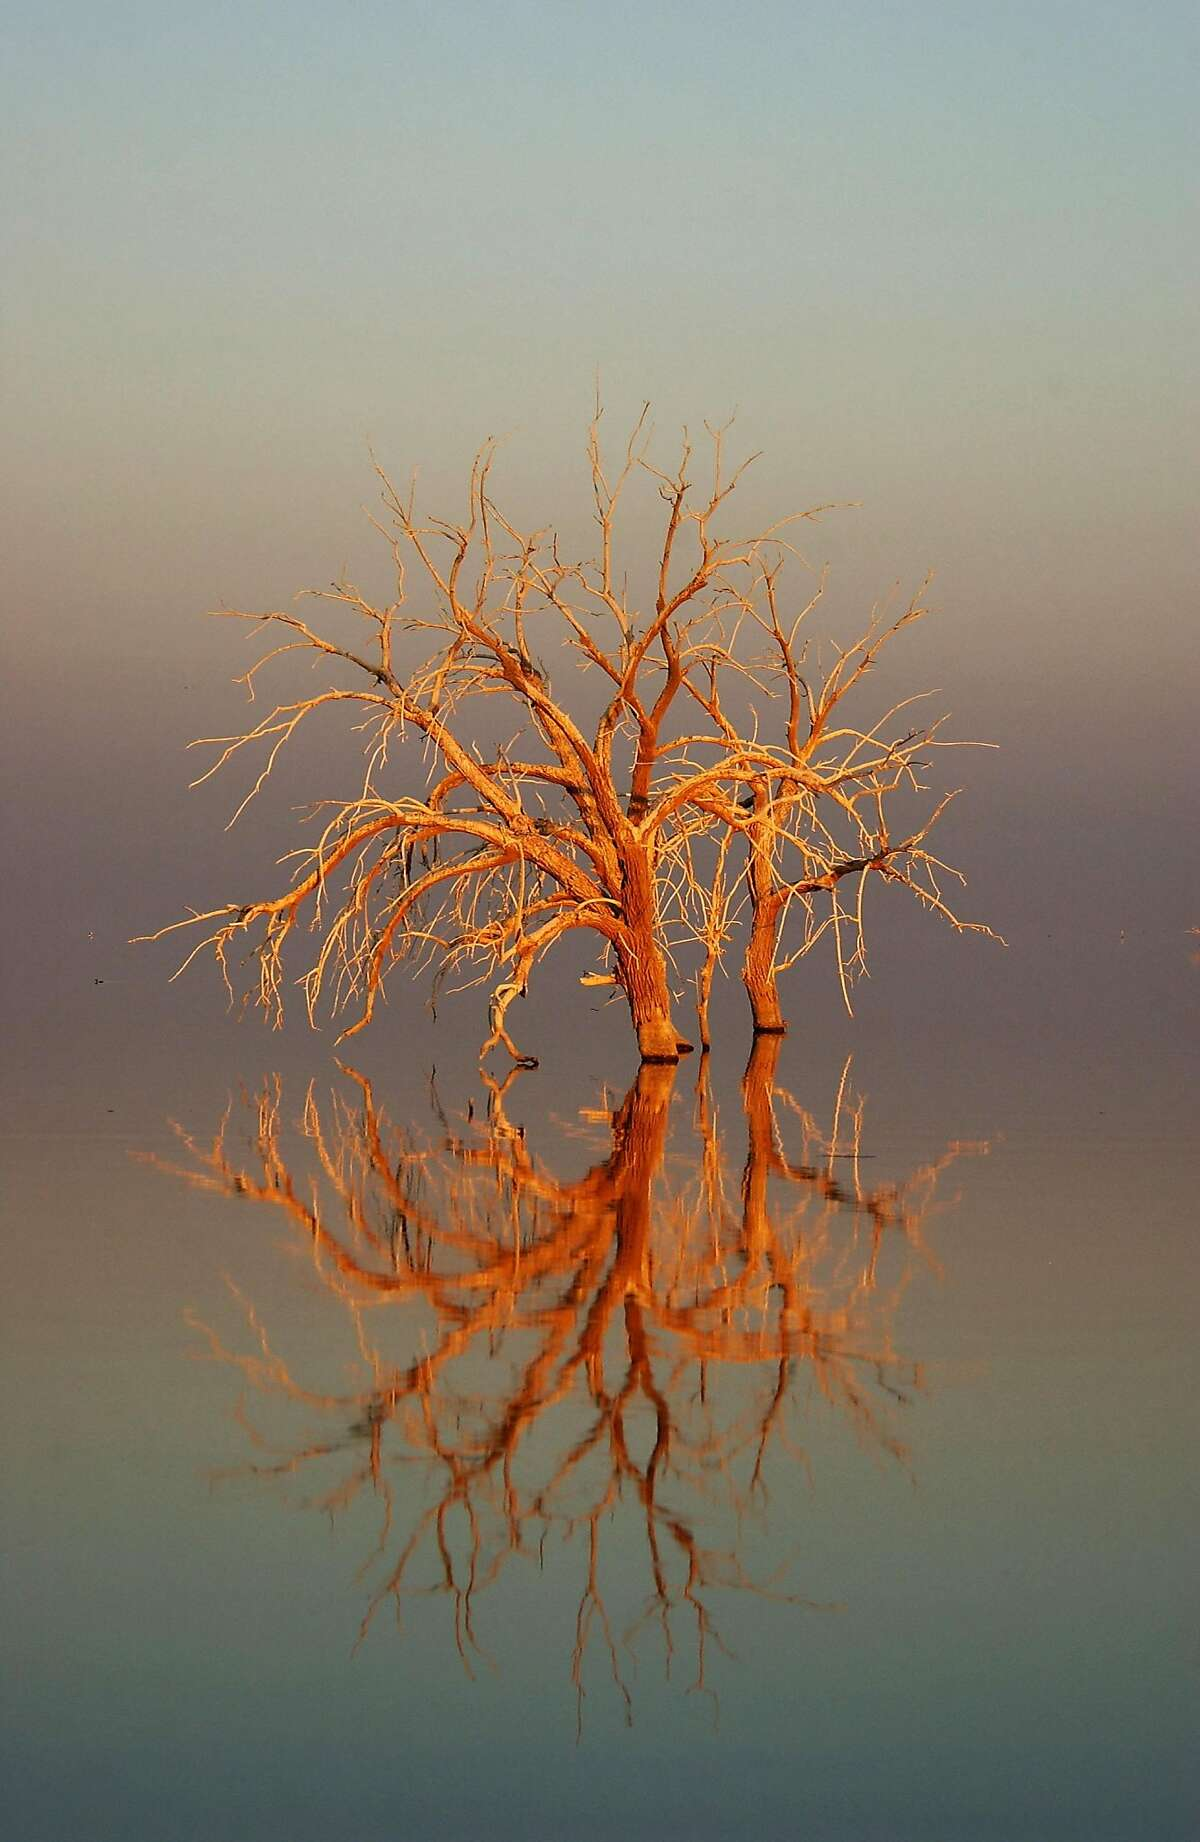 SALTON SEA, CA - JUNE 17: Trees flooded by the Salton Sea are illuminated by sunrise on June 17, 2003 in the Colorado Desert of southern California. The Salton Sea Authority is considering a plan to shrink the salty 376-square-mile lake by capturing and desalting agricultural runoff that flows into the sea from Imperial Valley farms in an effort to reduce salinity and make the body of water more habitable to fish and birds along the Pacific flyway. Farmers would then reuse the treated water, and more Colorado River water would be made available for Southern California cities, according to the Metropolitan Water District. The Salton Sea area has long been entrenched in California's water wars and is one a major stop for migrating birds. (Photo by David McNew/Getty Images)